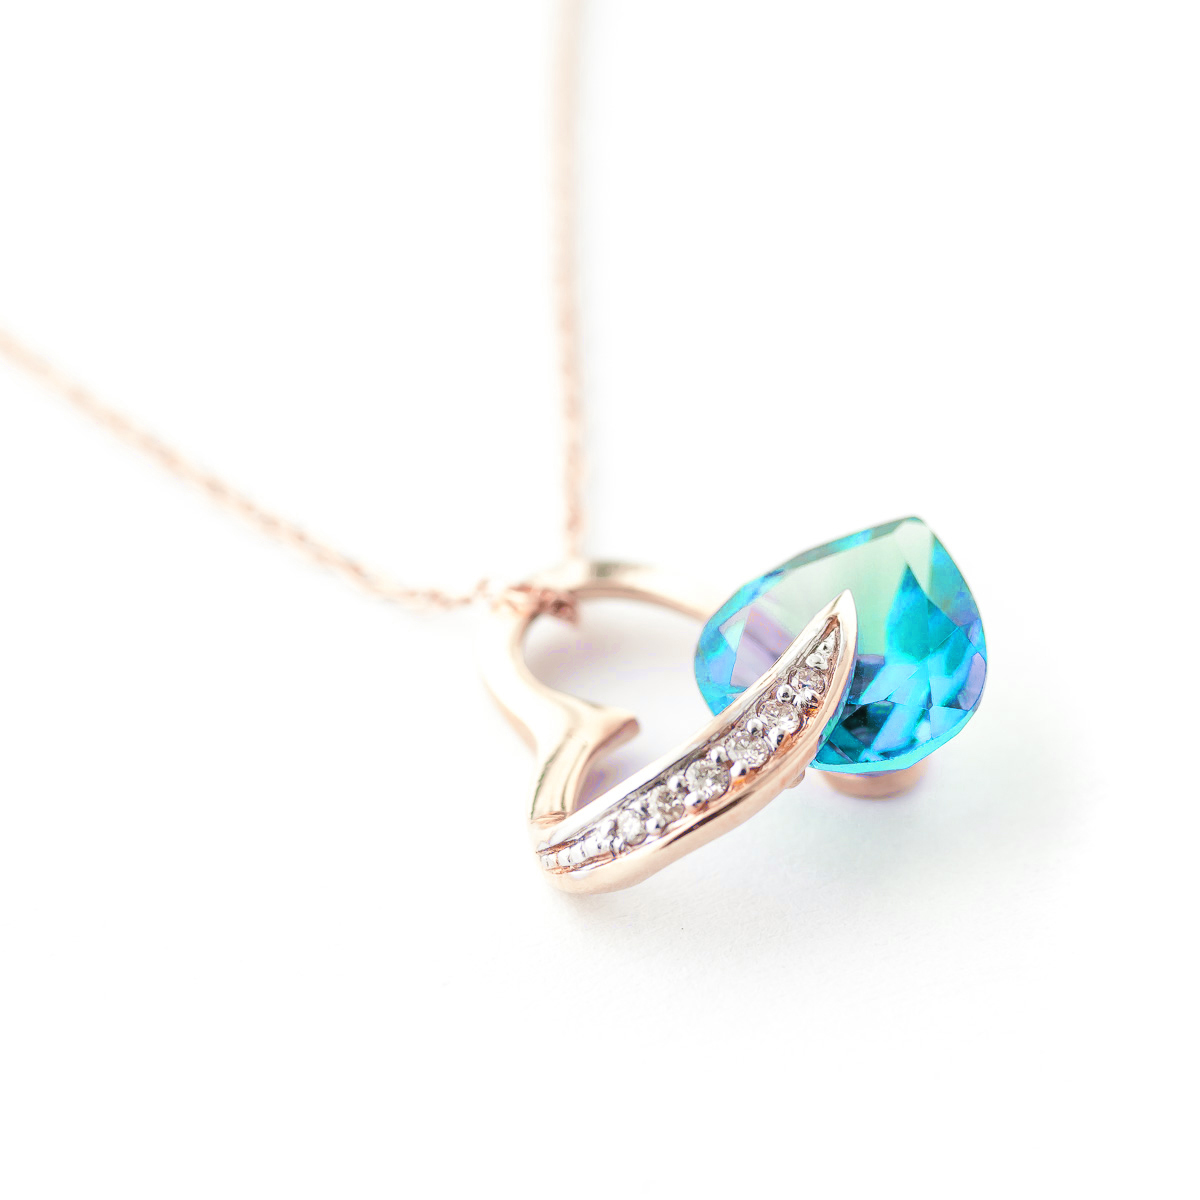 Blue Topaz and Diamond Pendant Necklace 4.5ct in 9ct Rose Gold